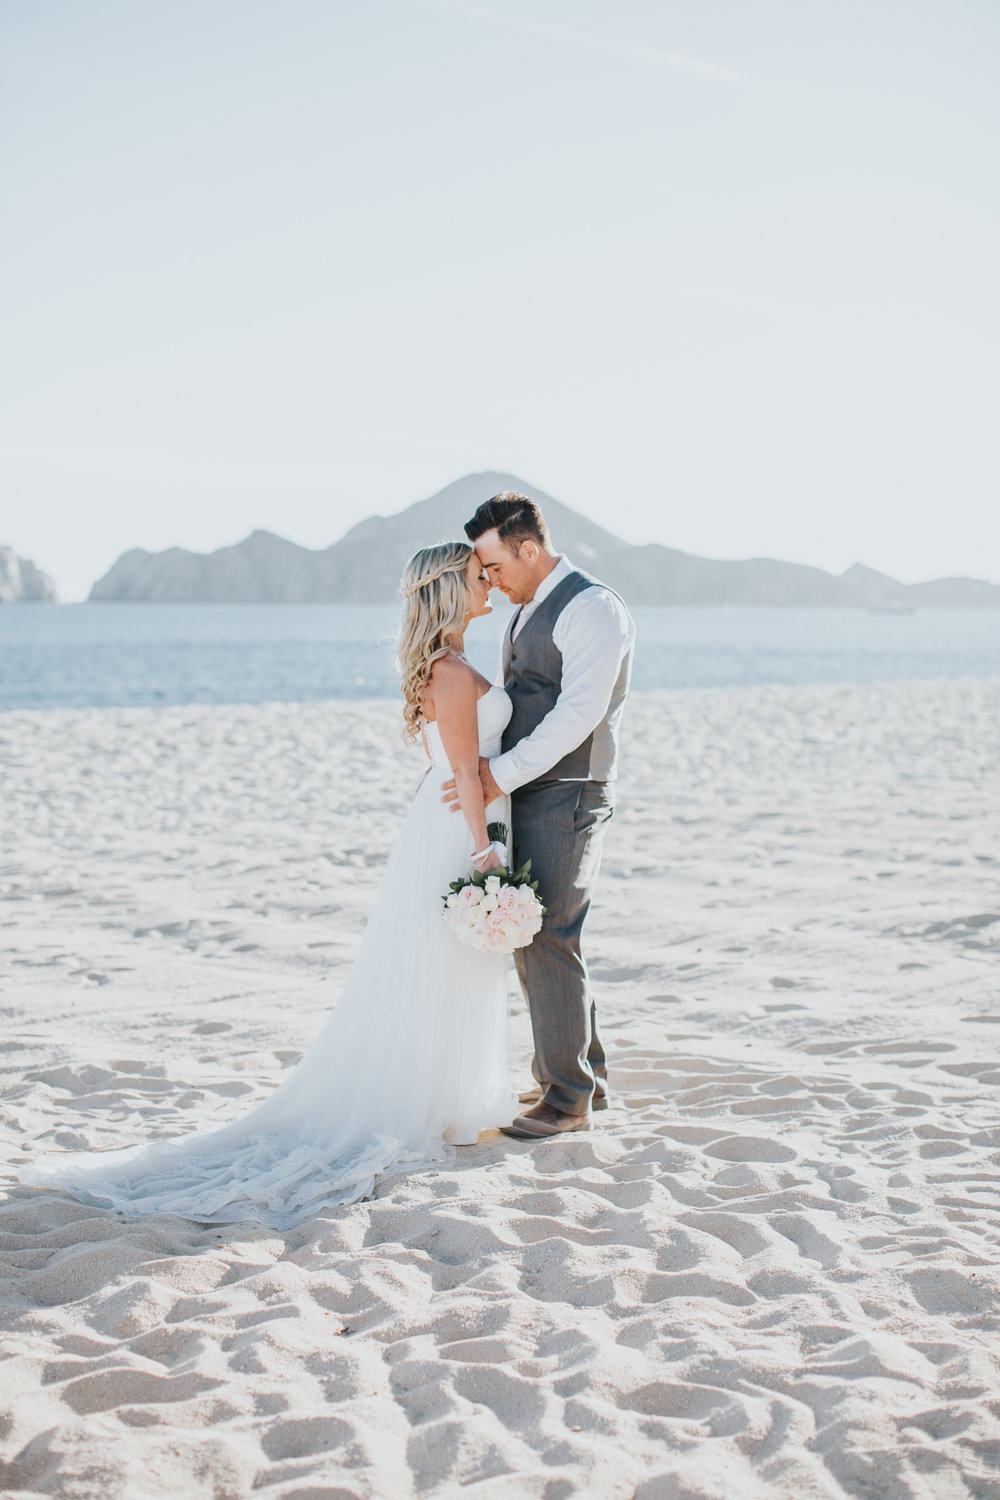 Ashleynickdestinationweddingmexicorivkahphotography-13.jpg